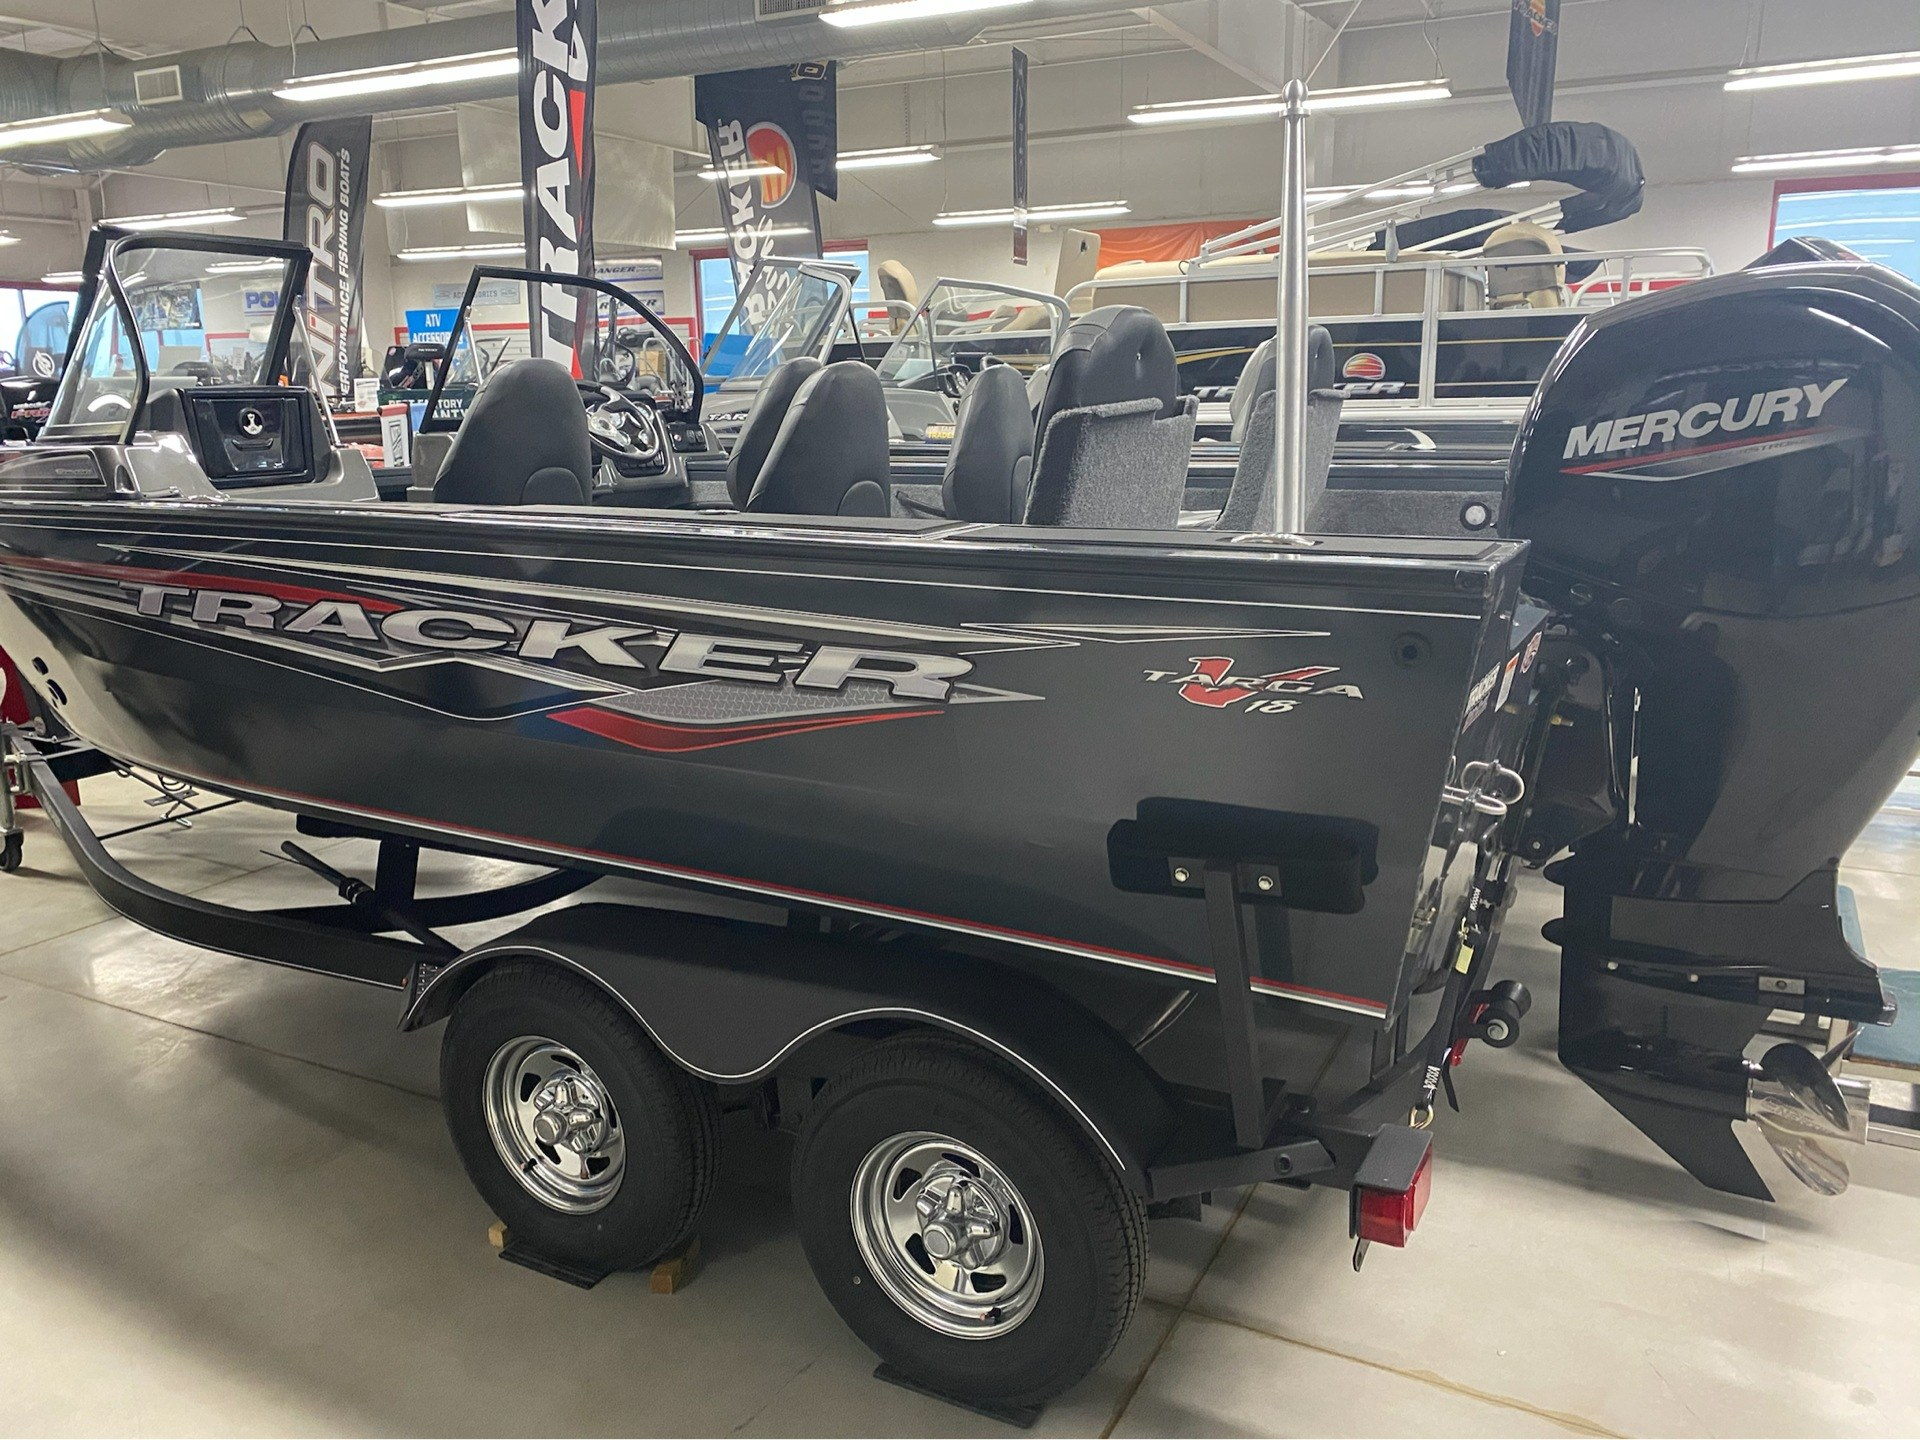 2020 Tracker Targa V-18 Combo in Appleton, Wisconsin - Photo 2